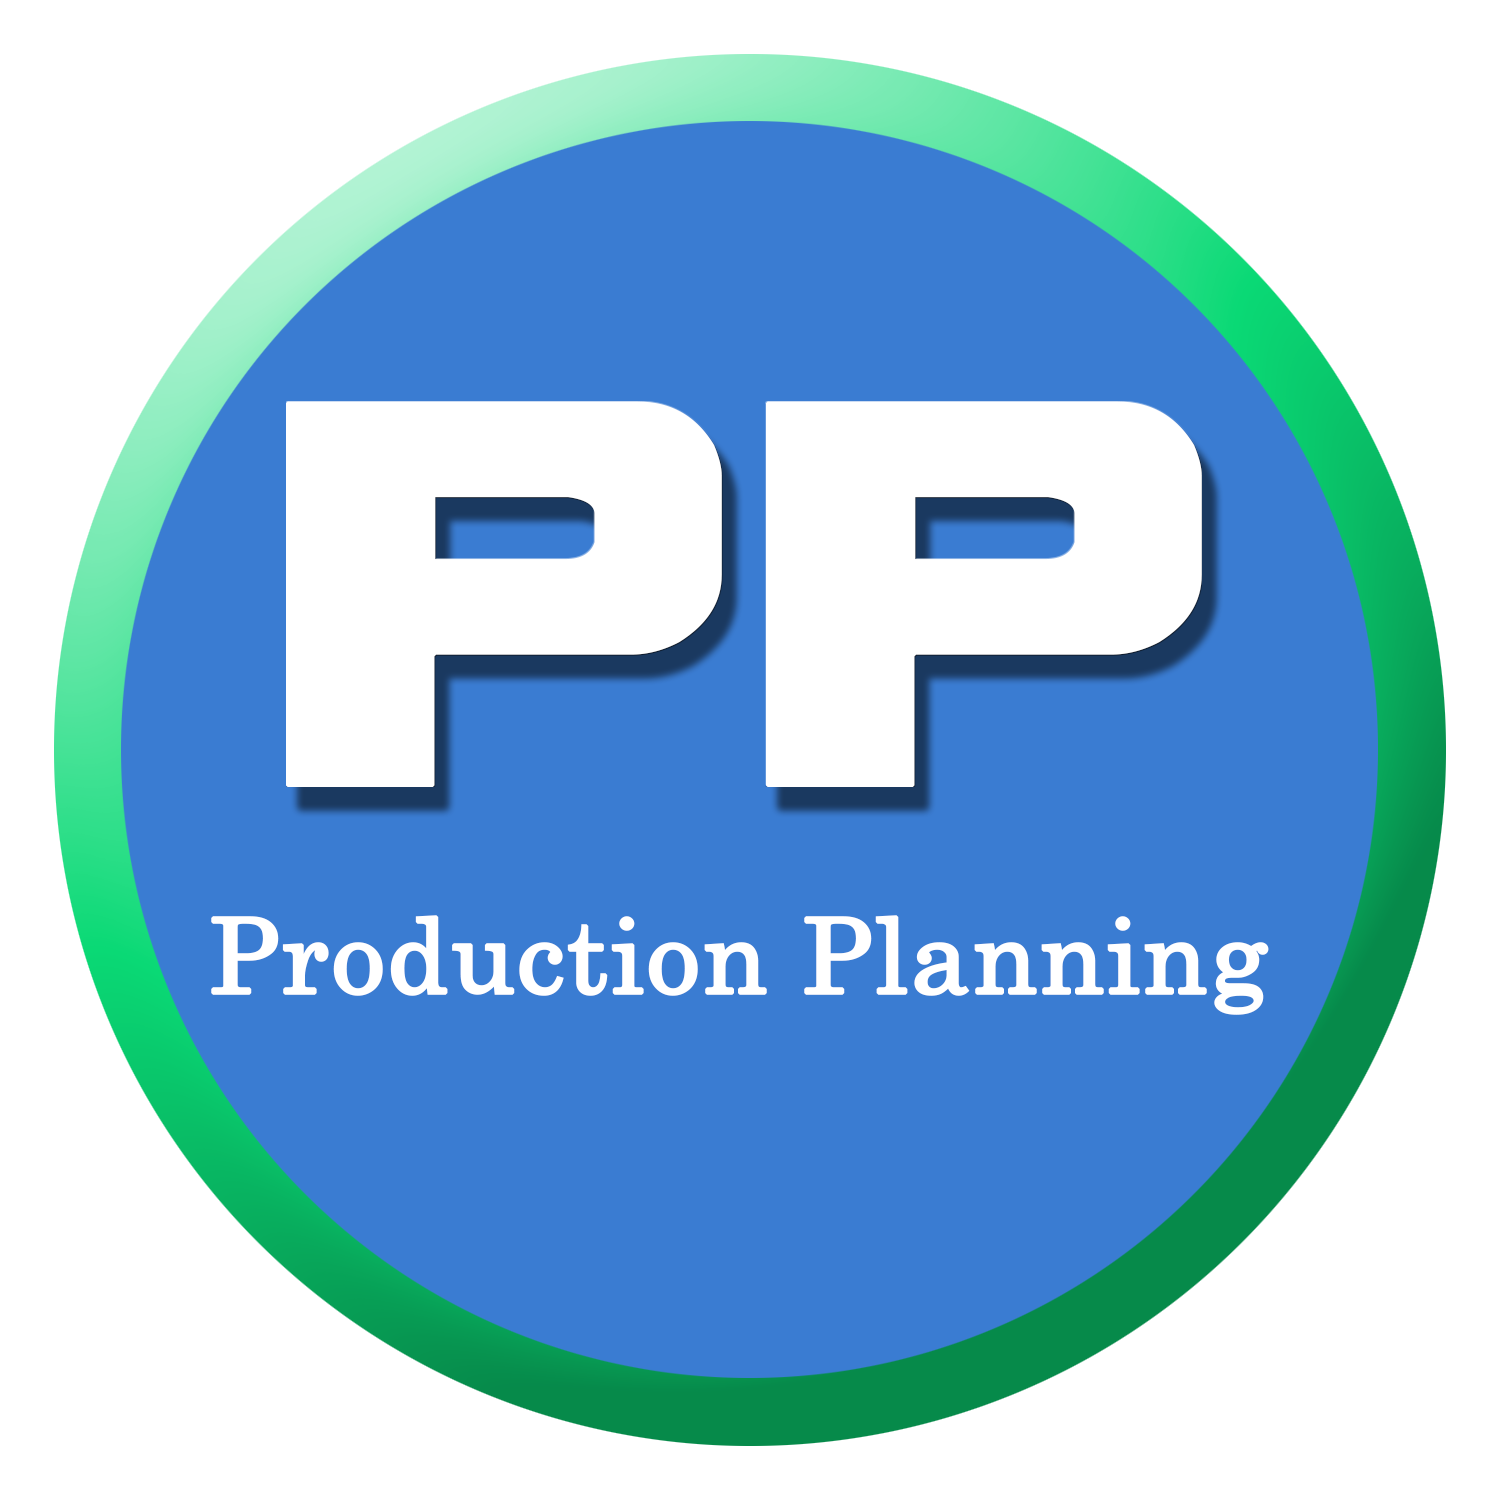 Future labs sector noida. Planning clipart production planning